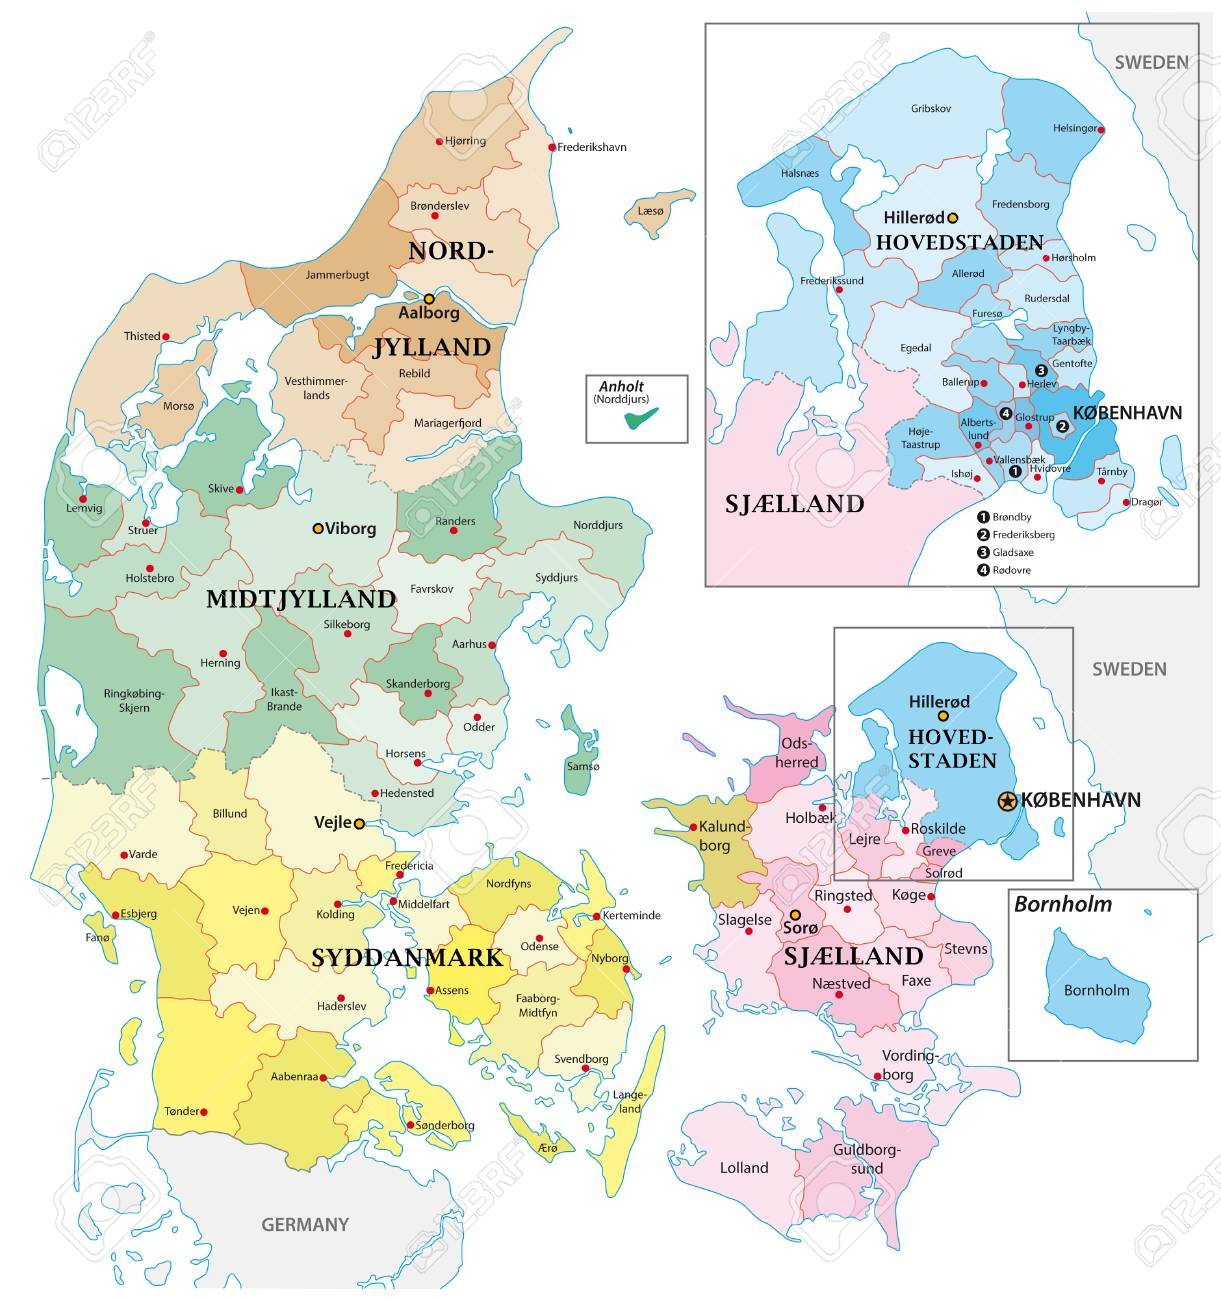 Administrative and political vector outline map of the Kingdom of Denmark - 126413083